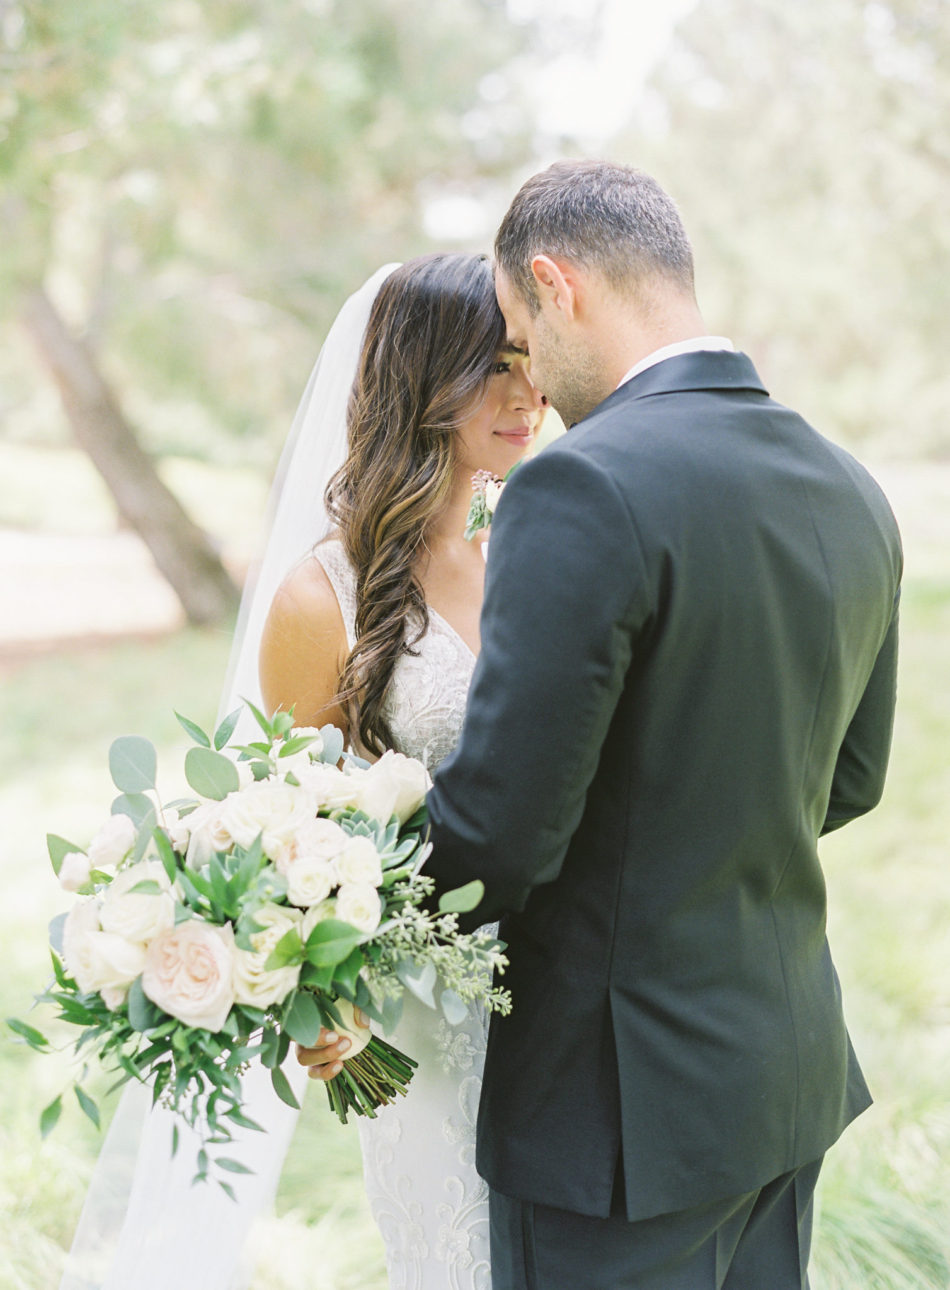 romantic waterfront wedding, bride and groom, bridal bouquet, floral design, florist, wedding florist, wedding flowers, orange county weddings, orange county wedding florist, orange county florist, orange county floral design, flowers by cina